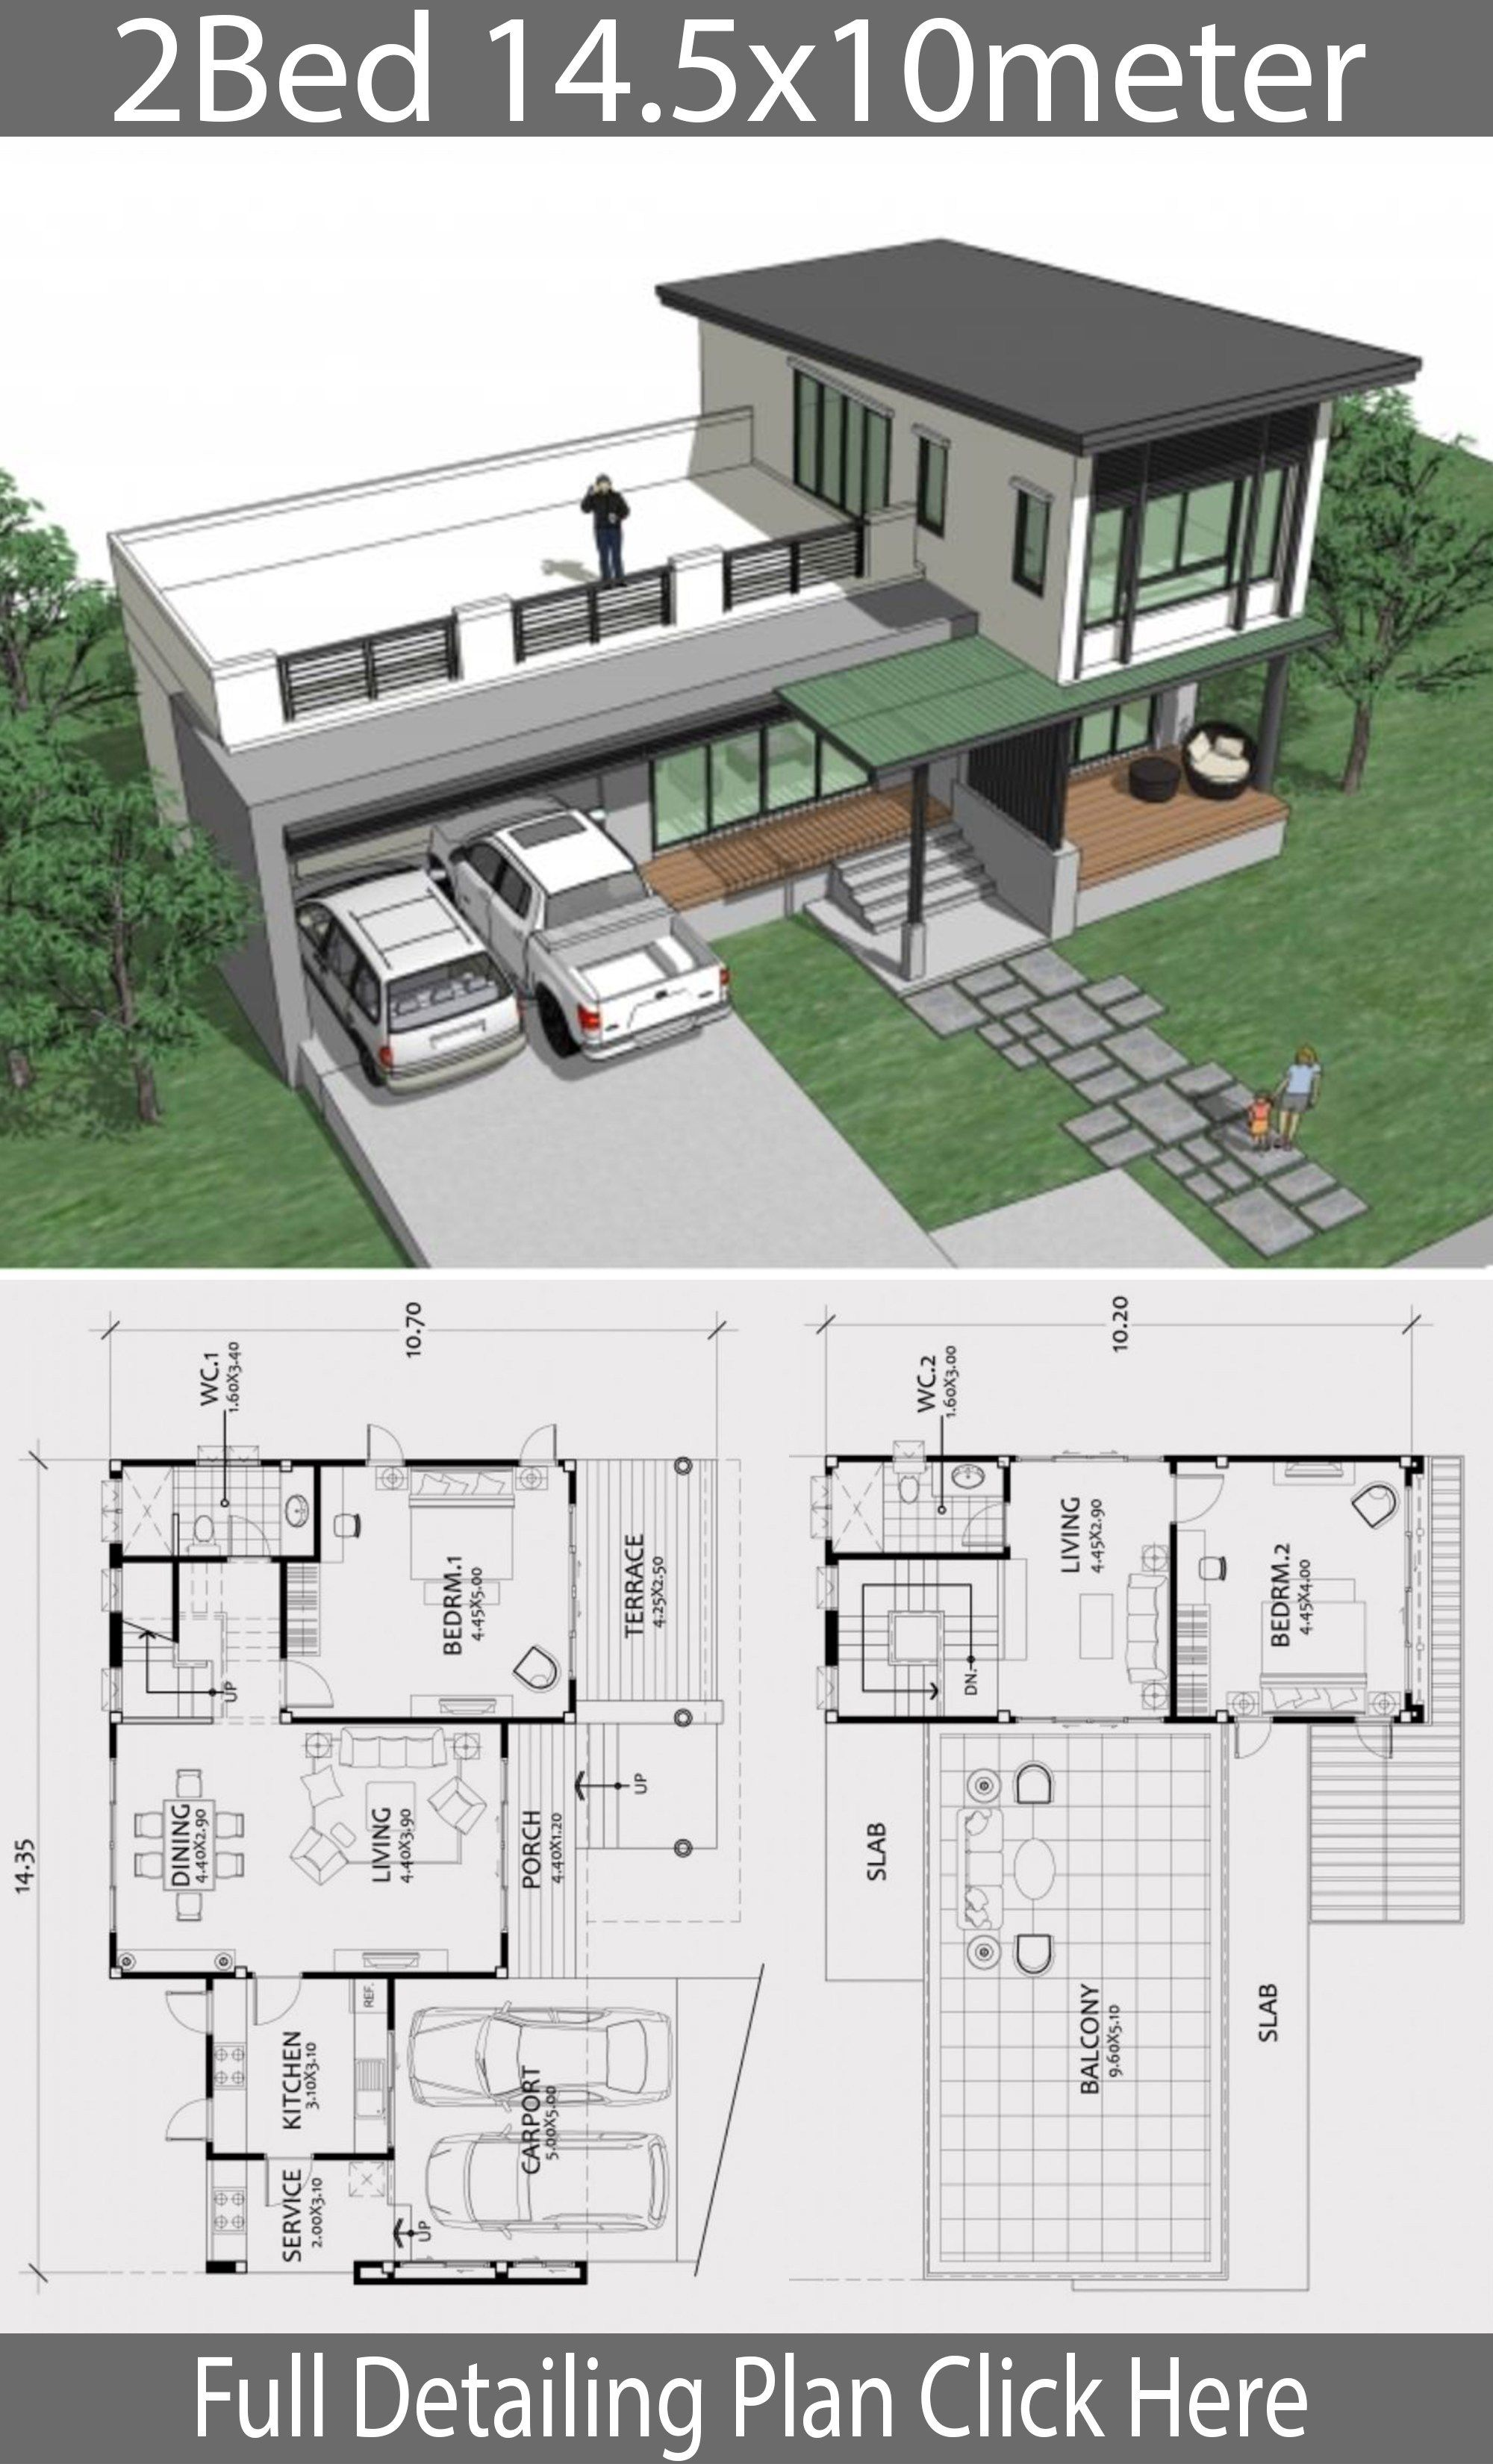 Home Design Plan 14 5x10m With 2 Bedroom Home Design With Plan Home Design Floor Plans Home Design Plan Modern House Plans